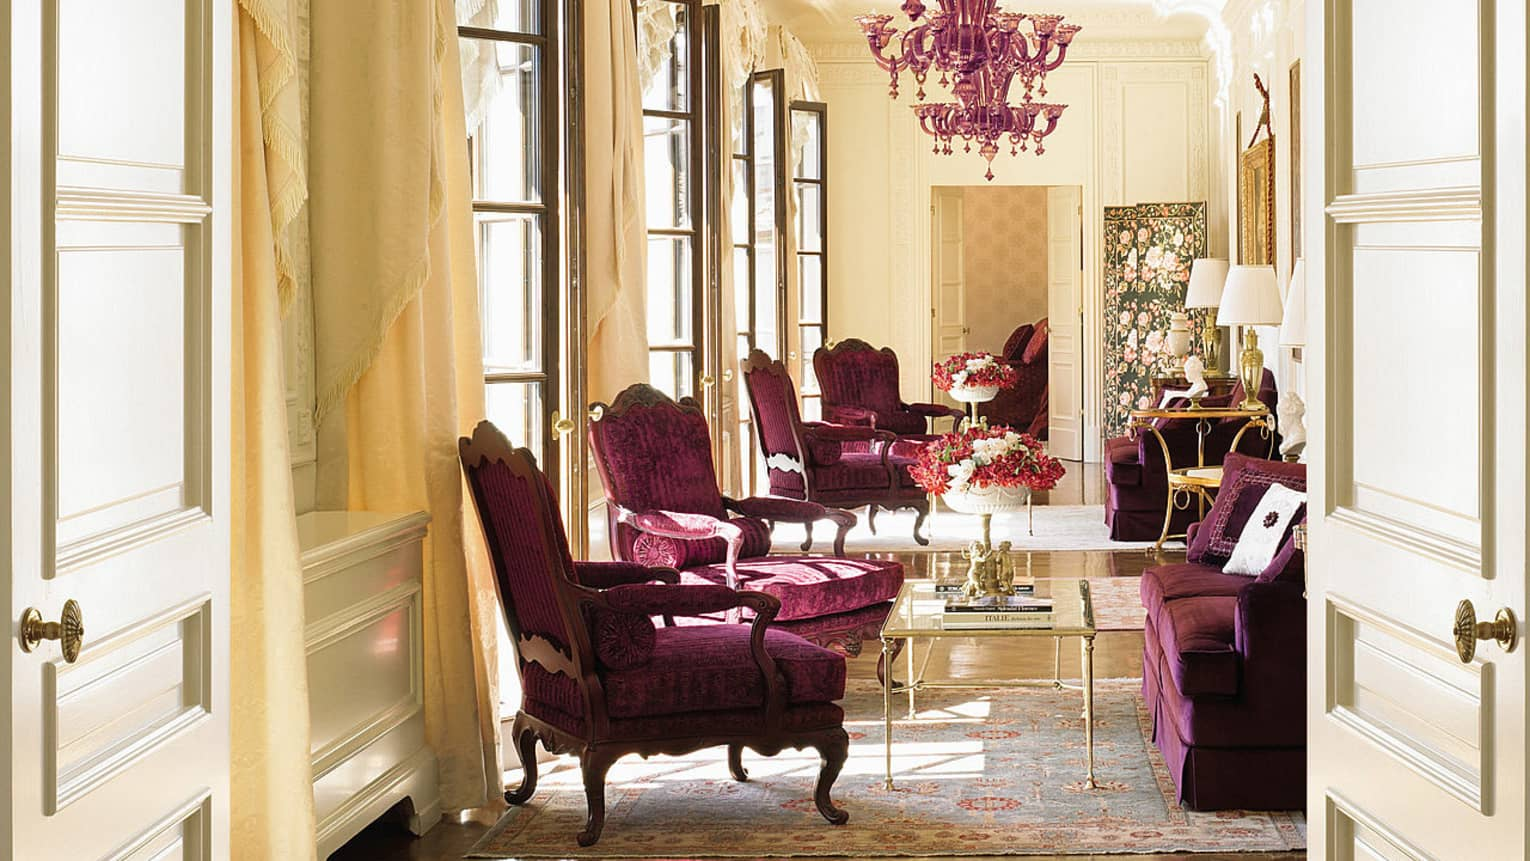 Sunny Presidential Suite purple velvet armchairs, loveseat under purple crystal chandelier